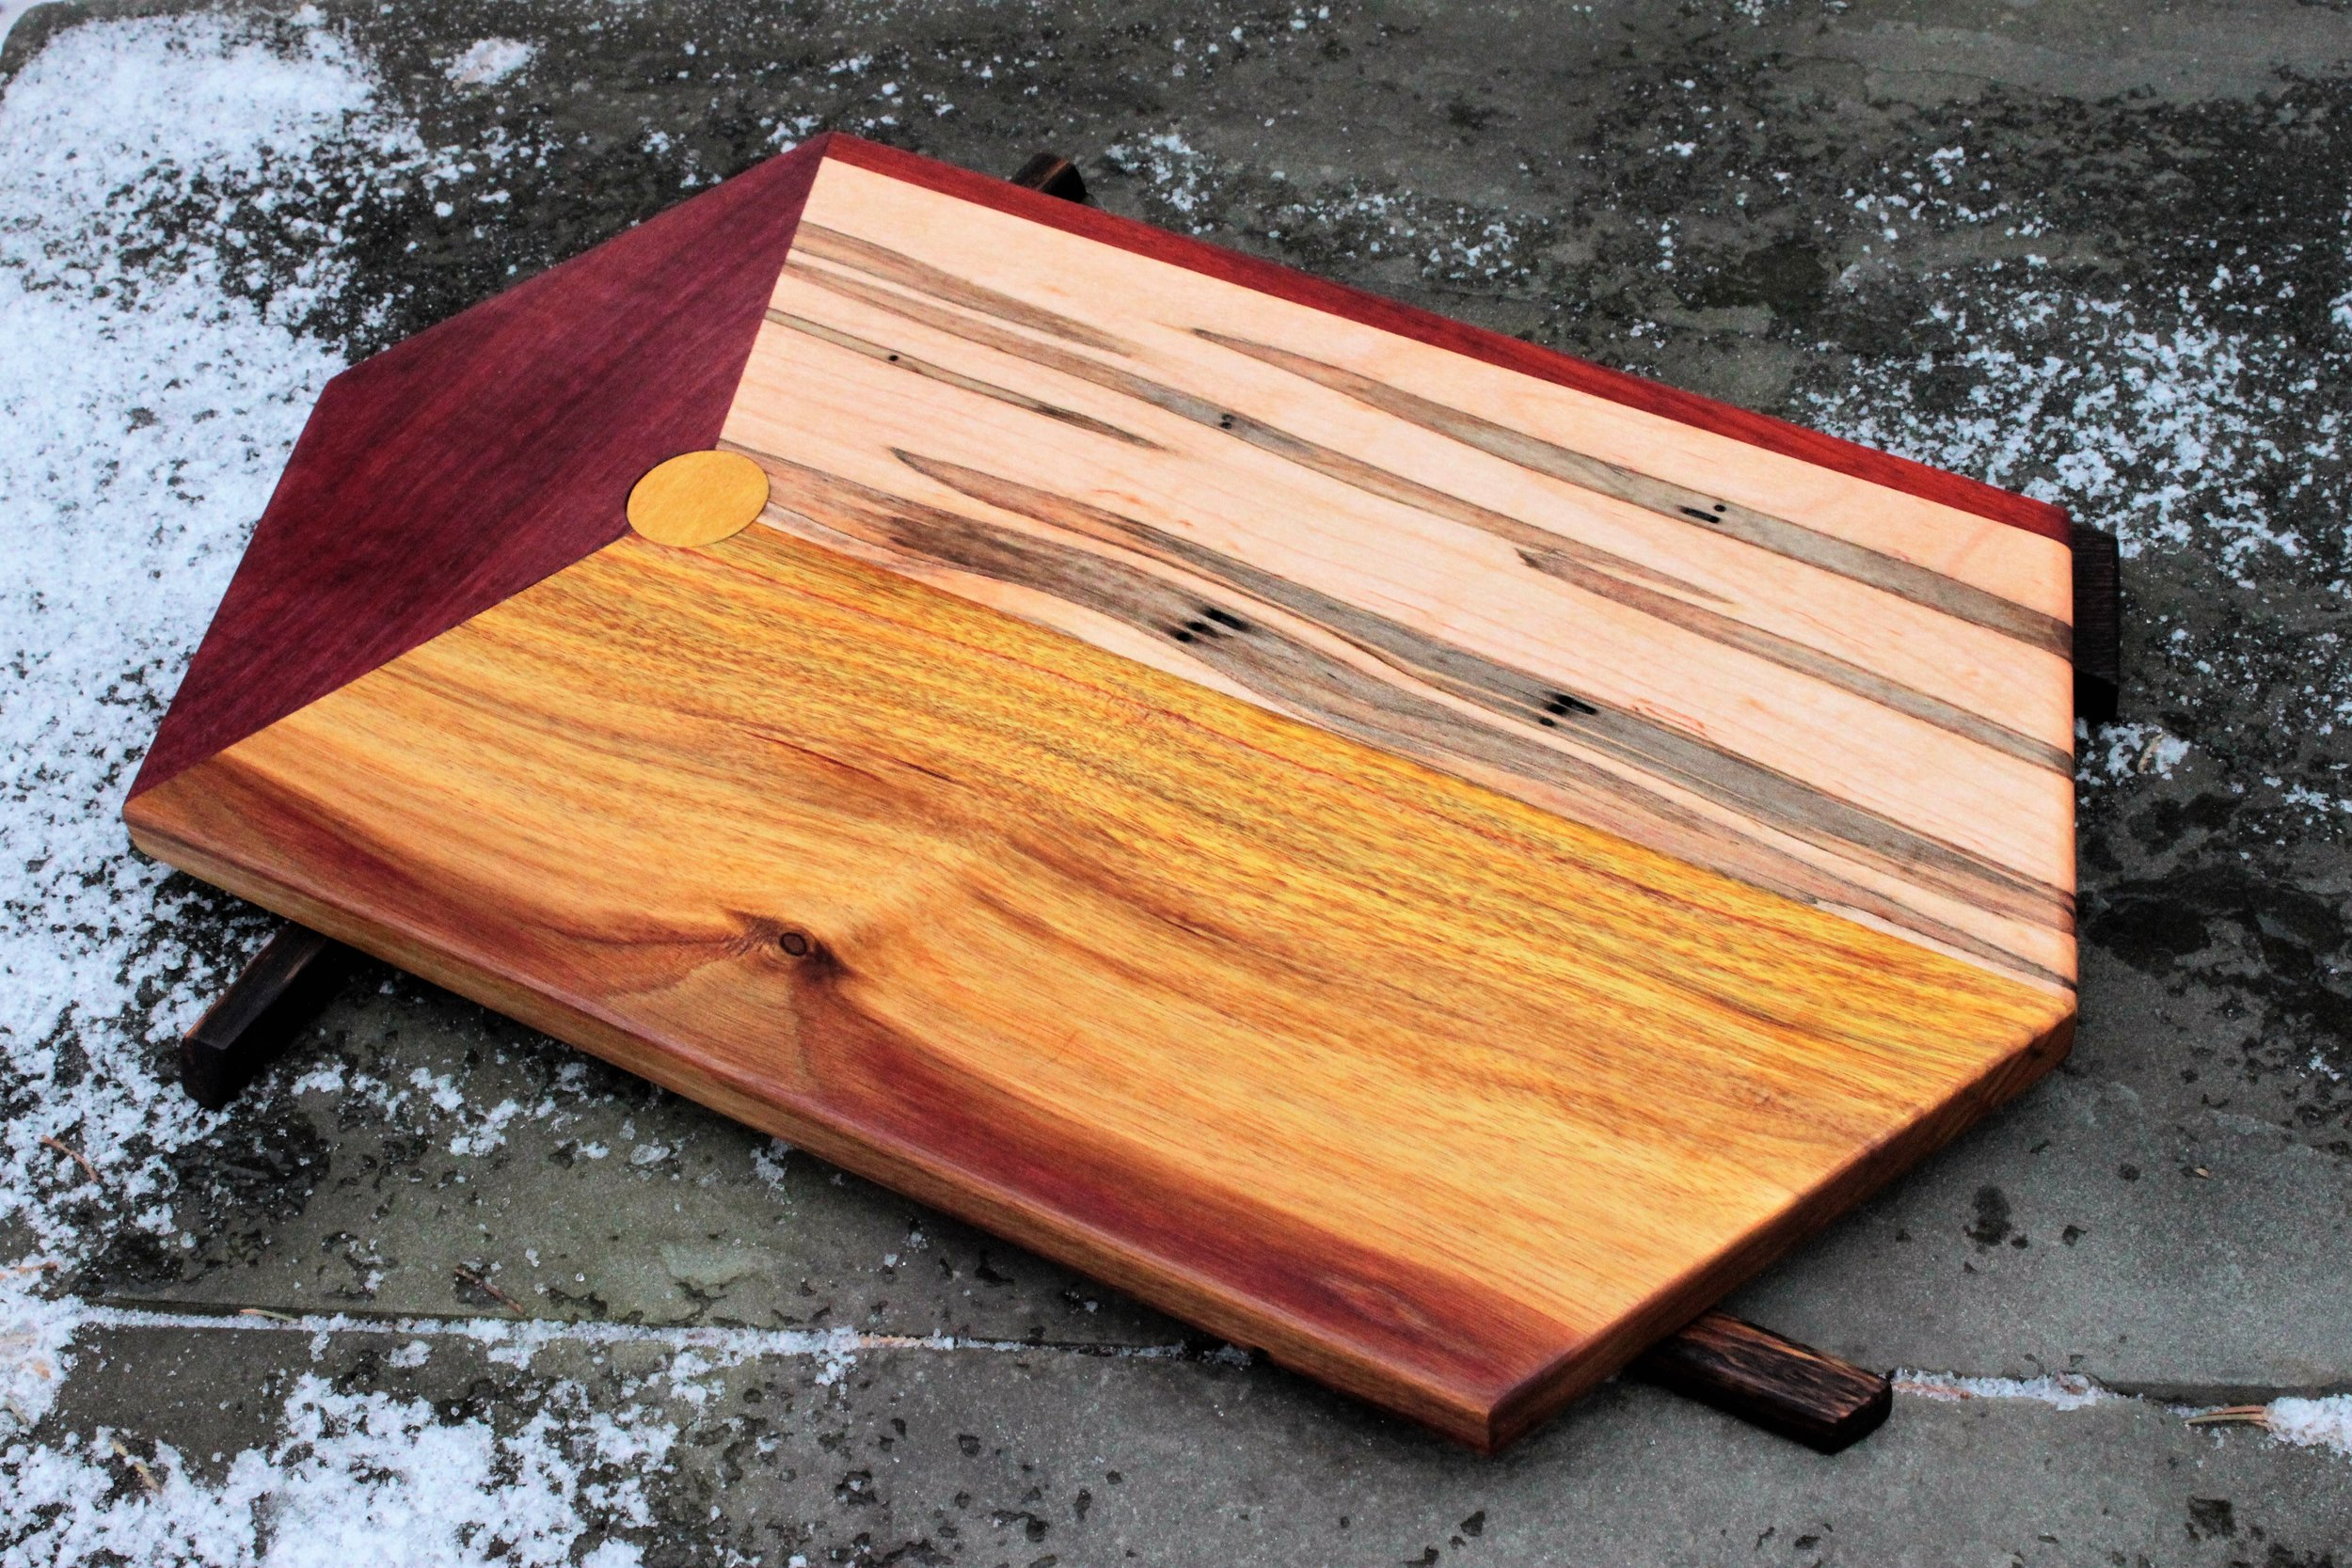 Canarywood, ambrosia maple and purpleheart